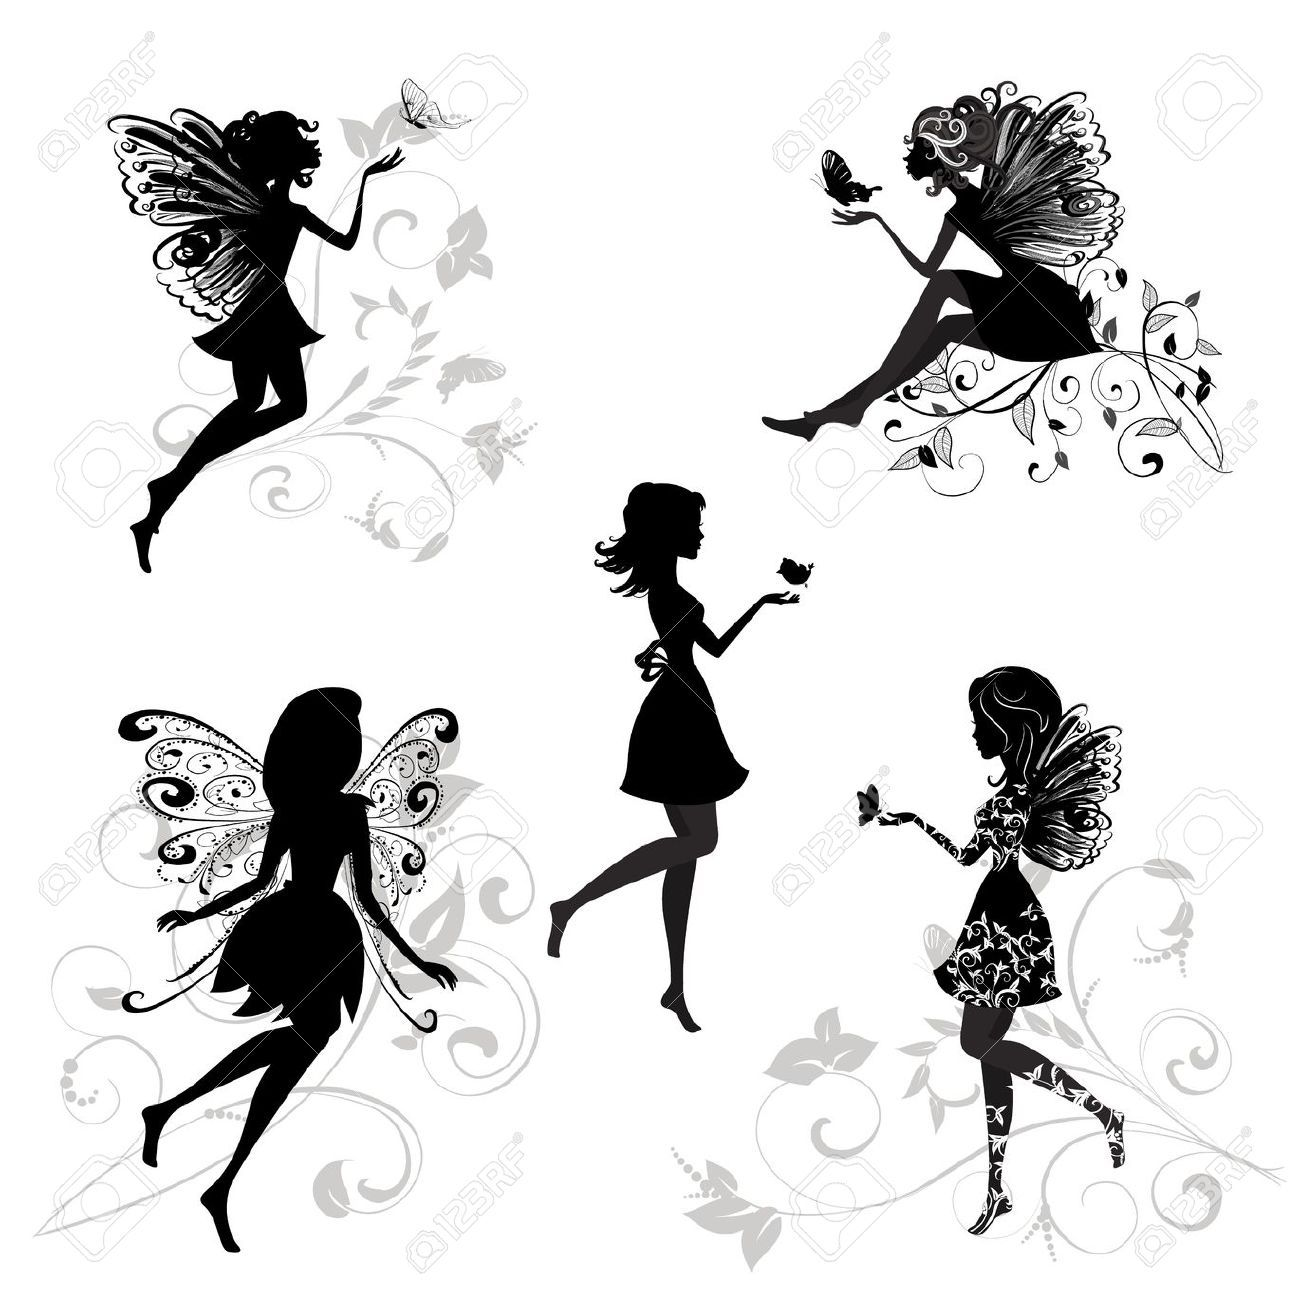 Royalty free fairy. Silhouette stock illustrations cliparts